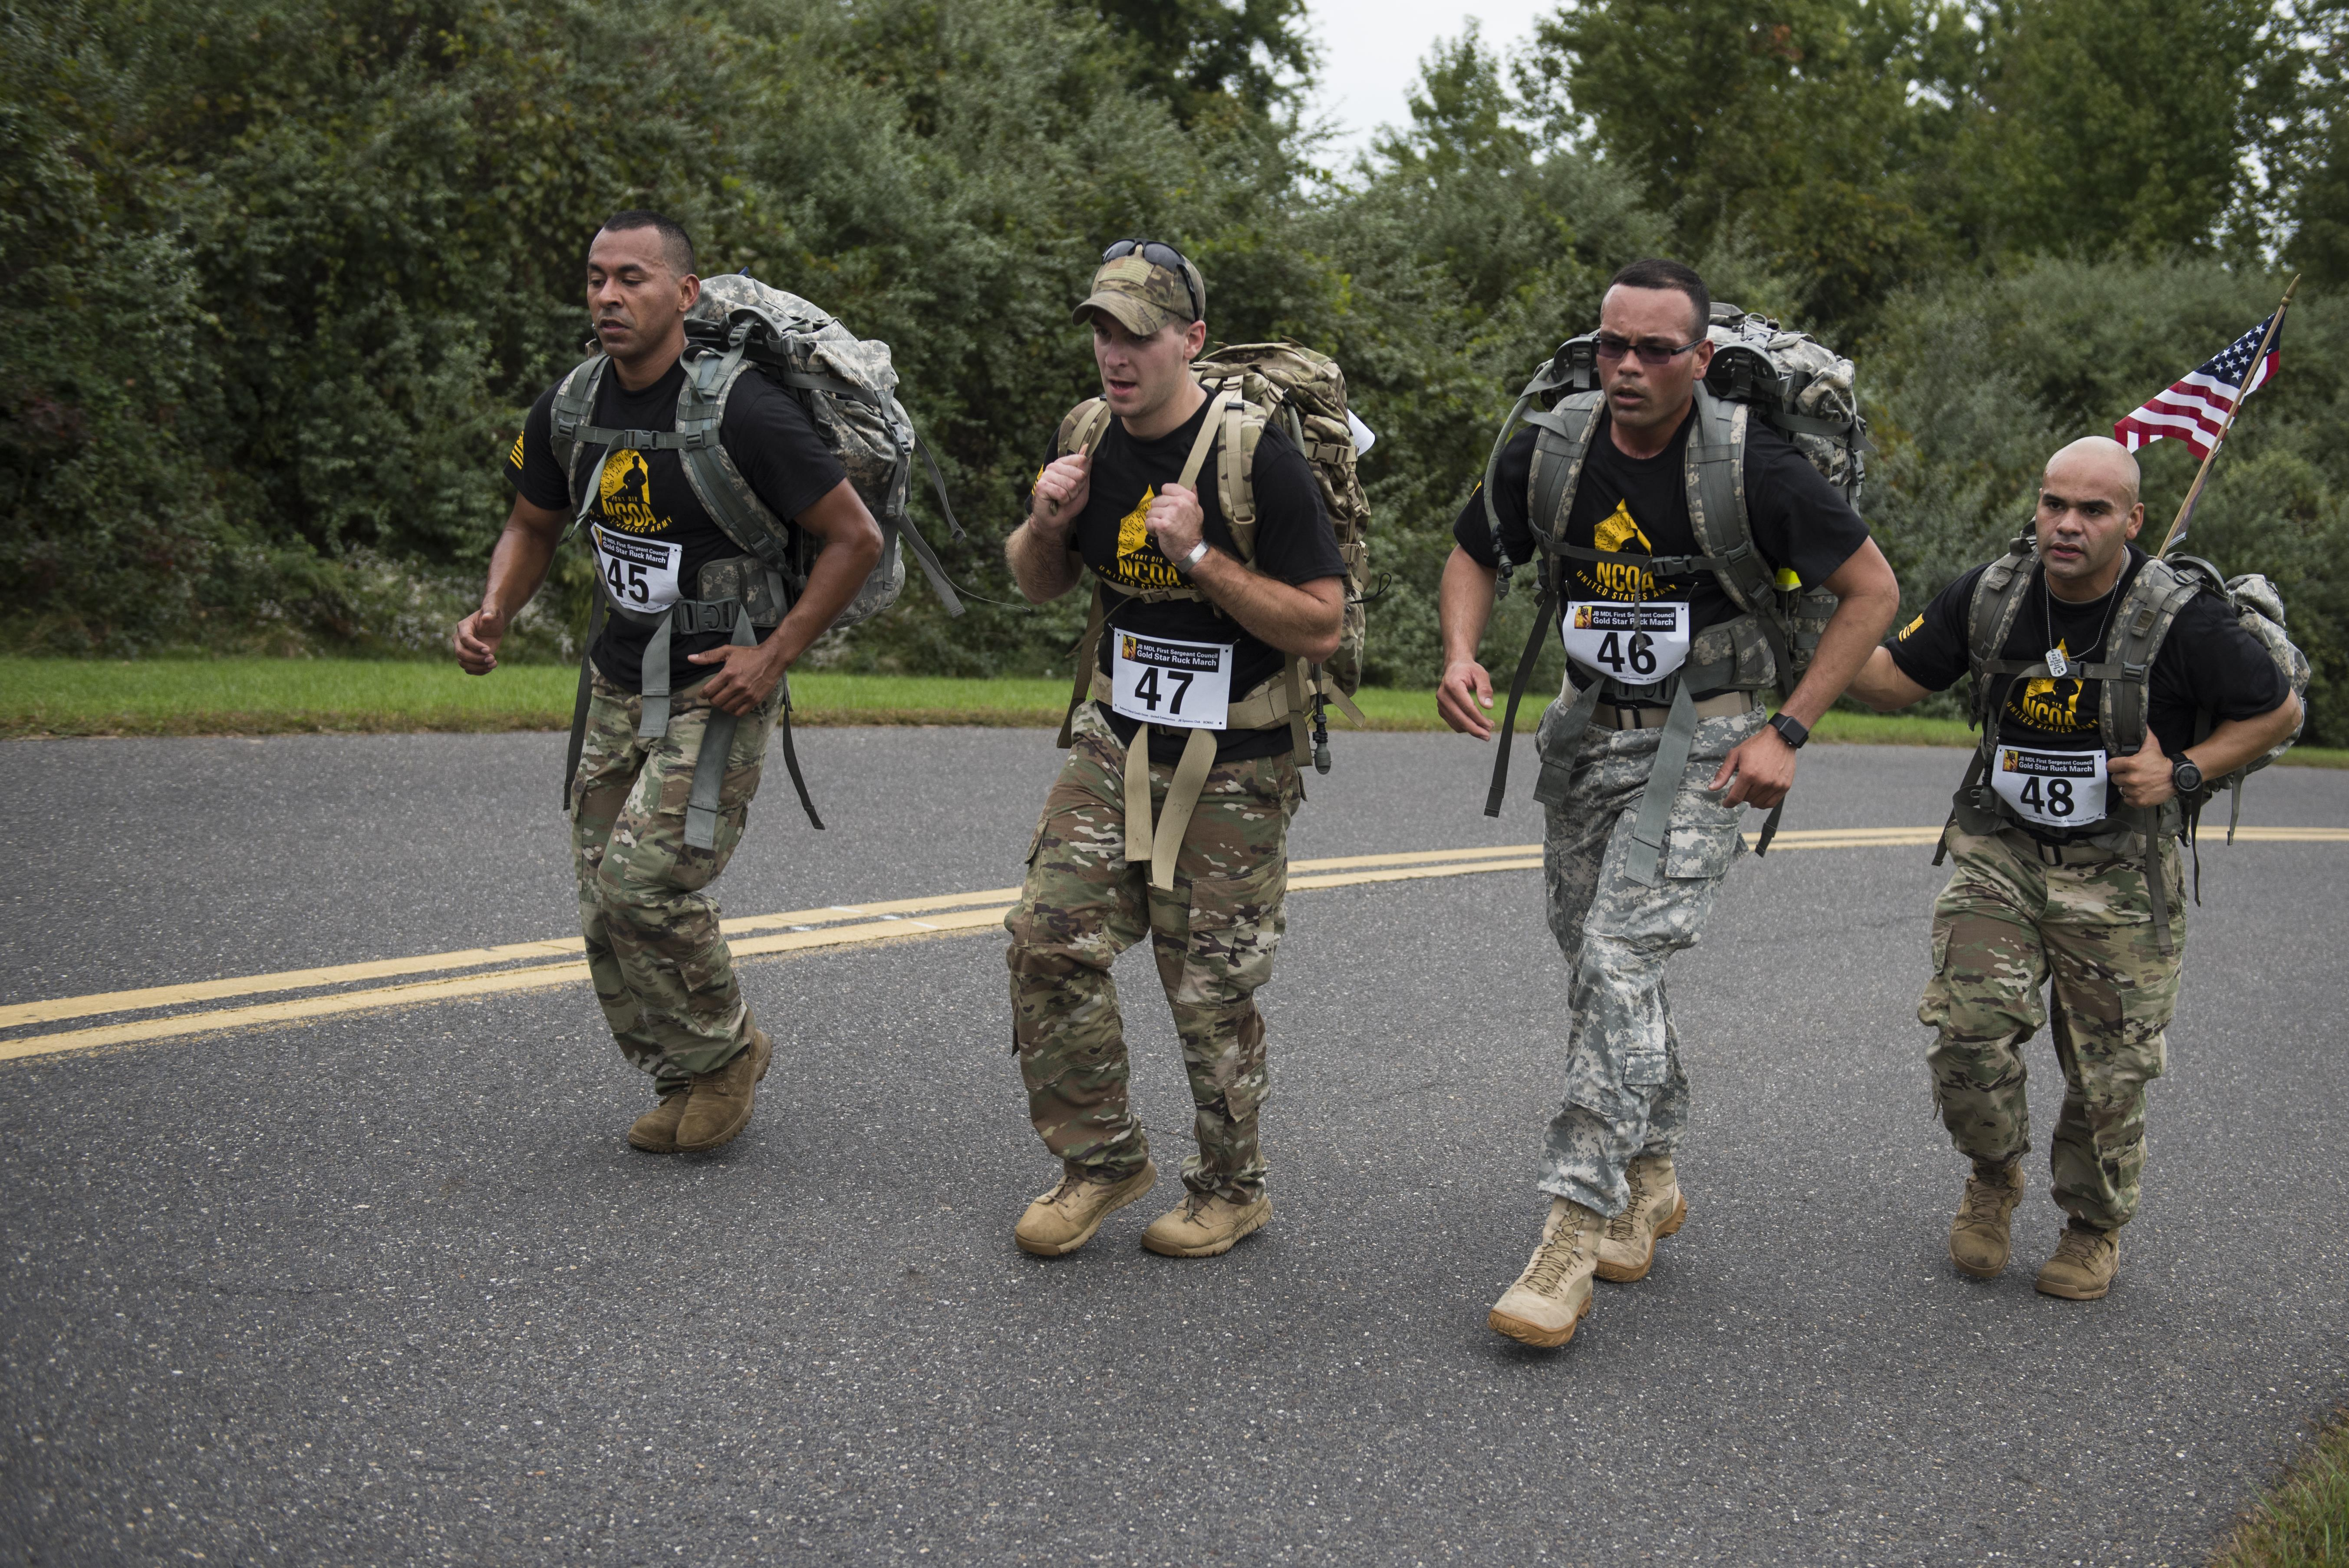 Ruck marches